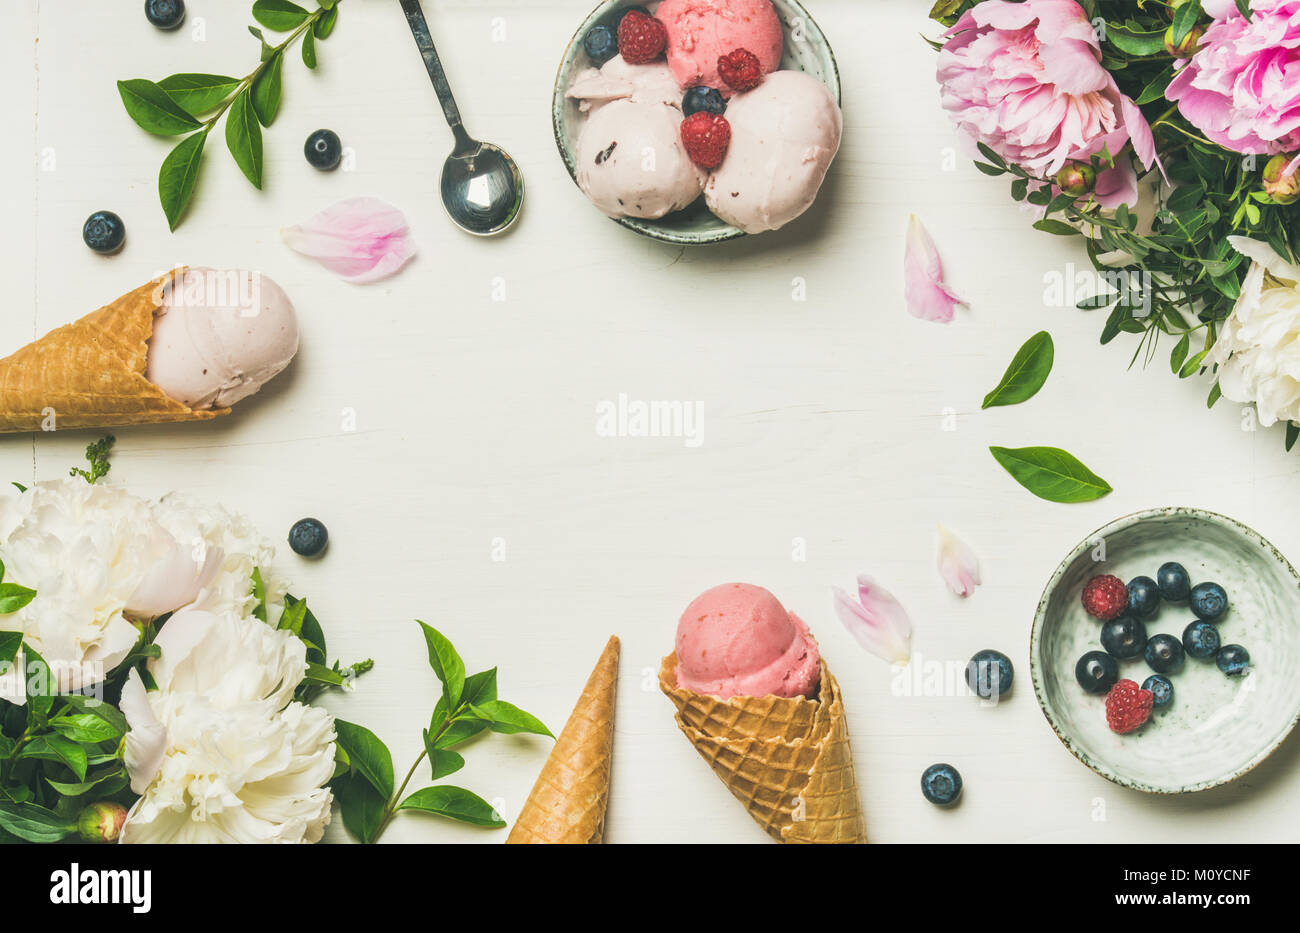 Flatlay of pink strawberry and coconut ice cream scoops, sweet cones and peony flowers bouquet over white background, - Stock Image